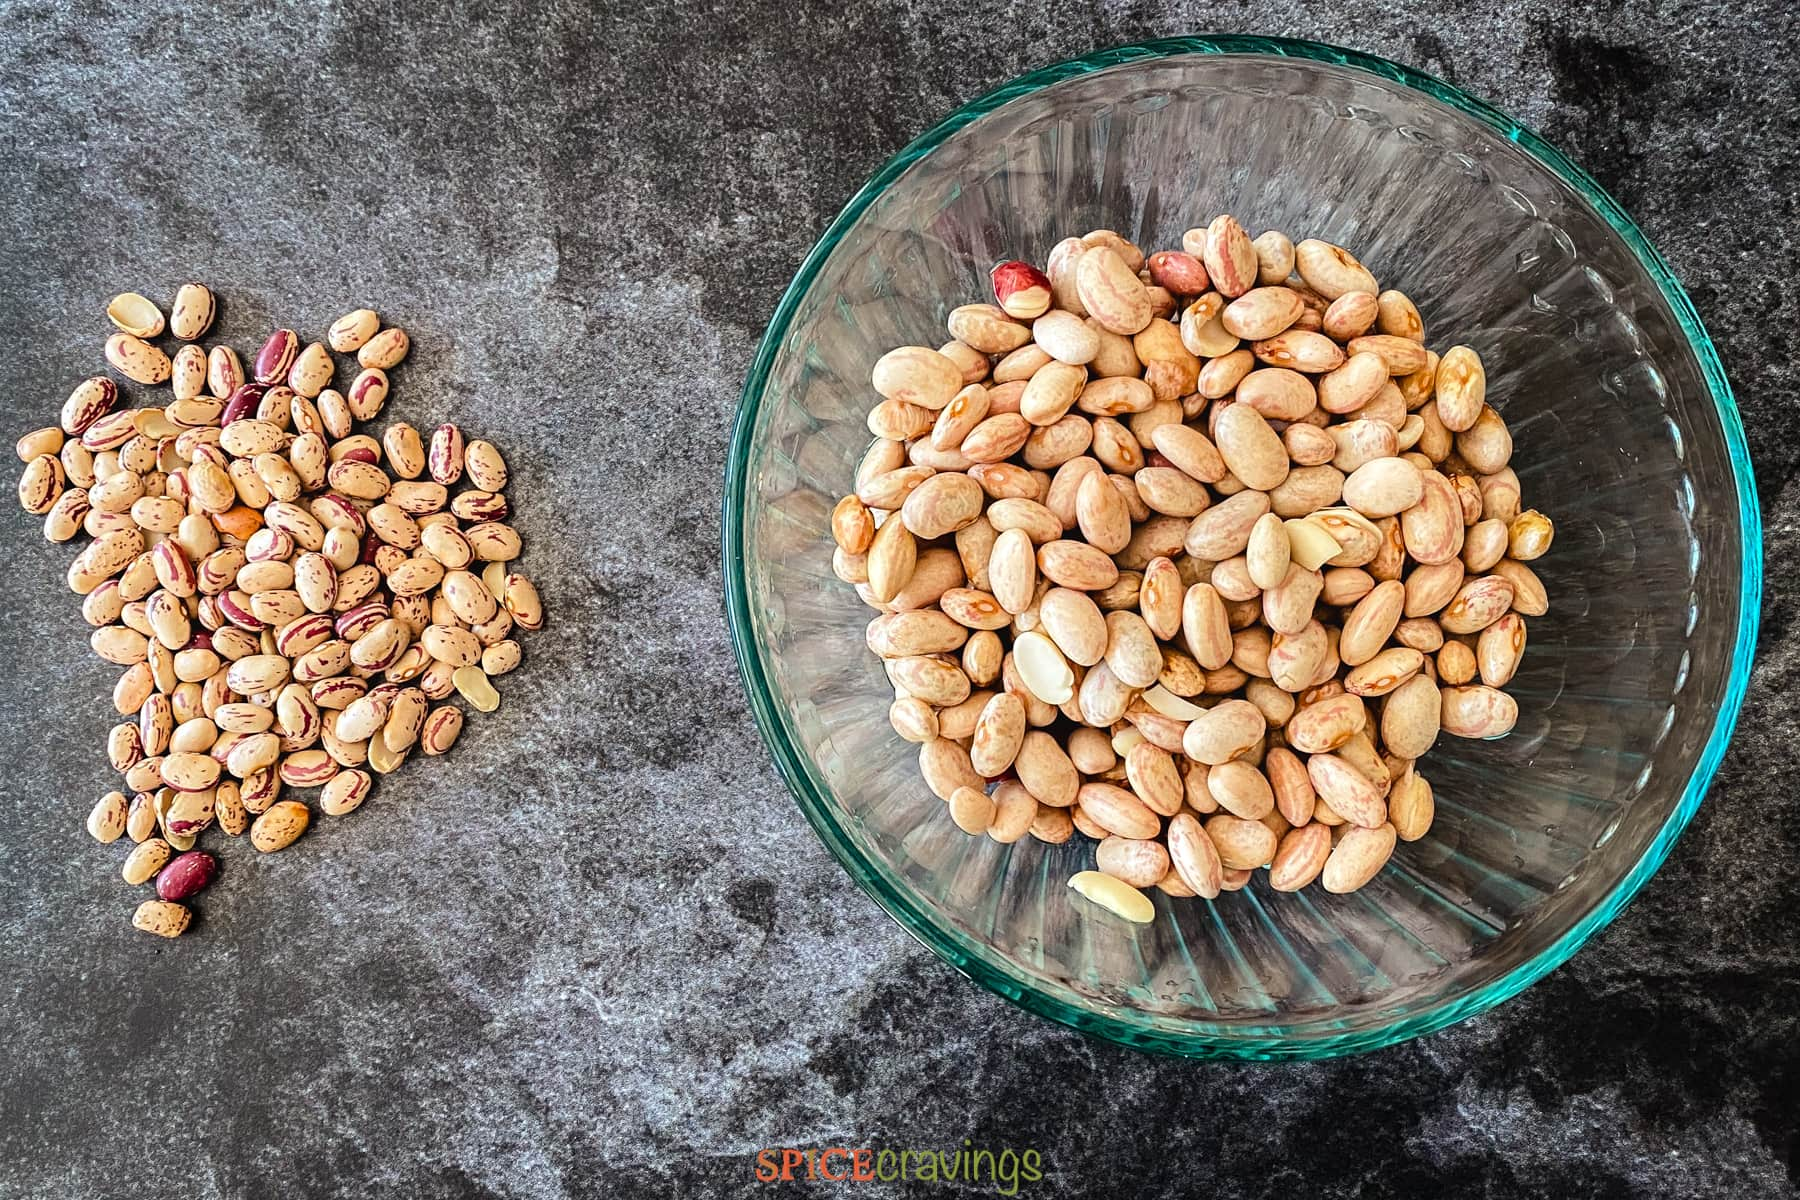 Uncooked pinto beans in a bowl and on a counter